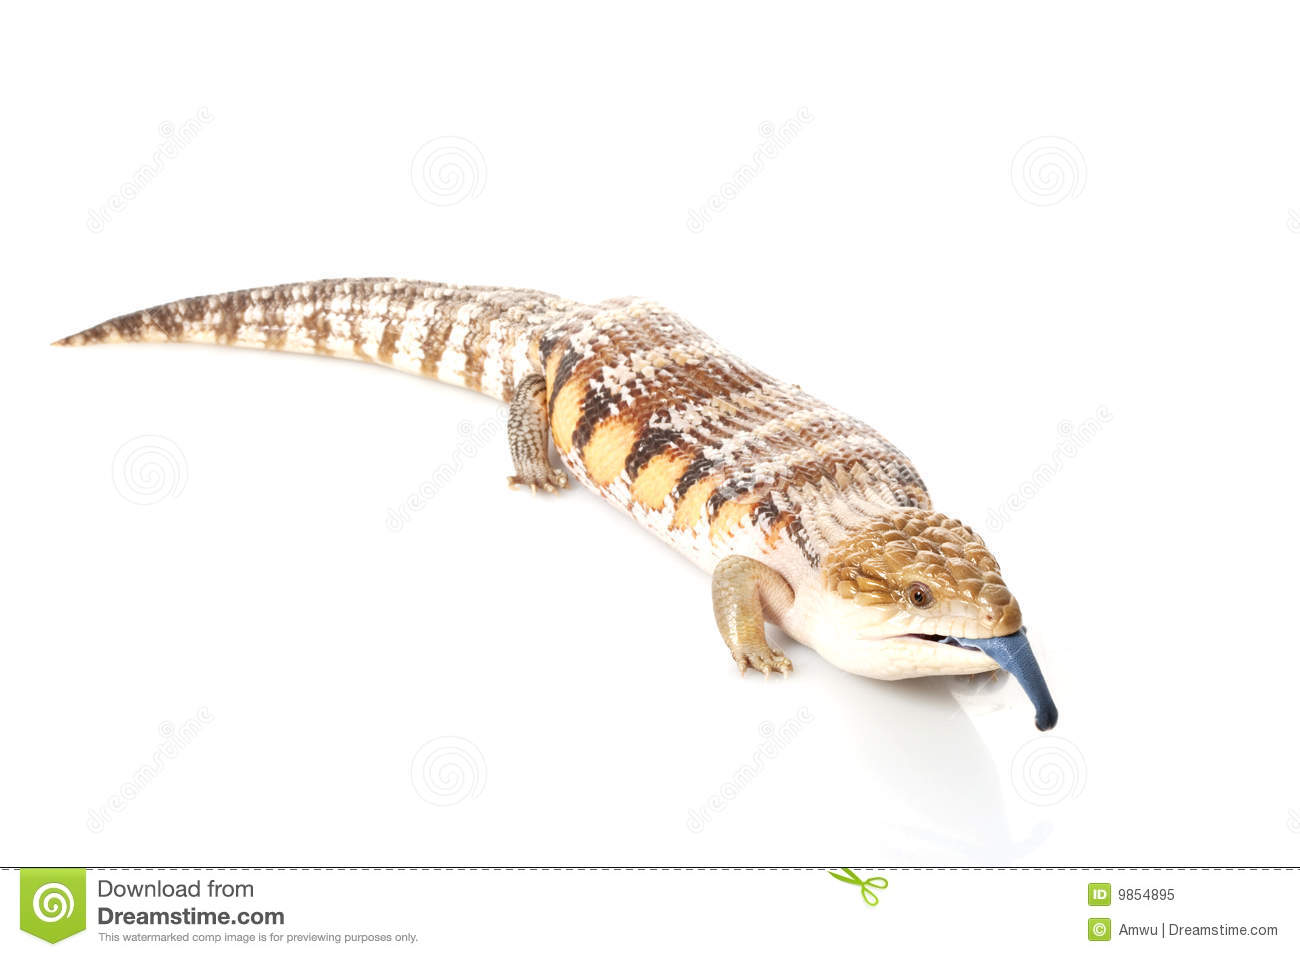 Blue-Tongue Skink clipart #18, Download drawings